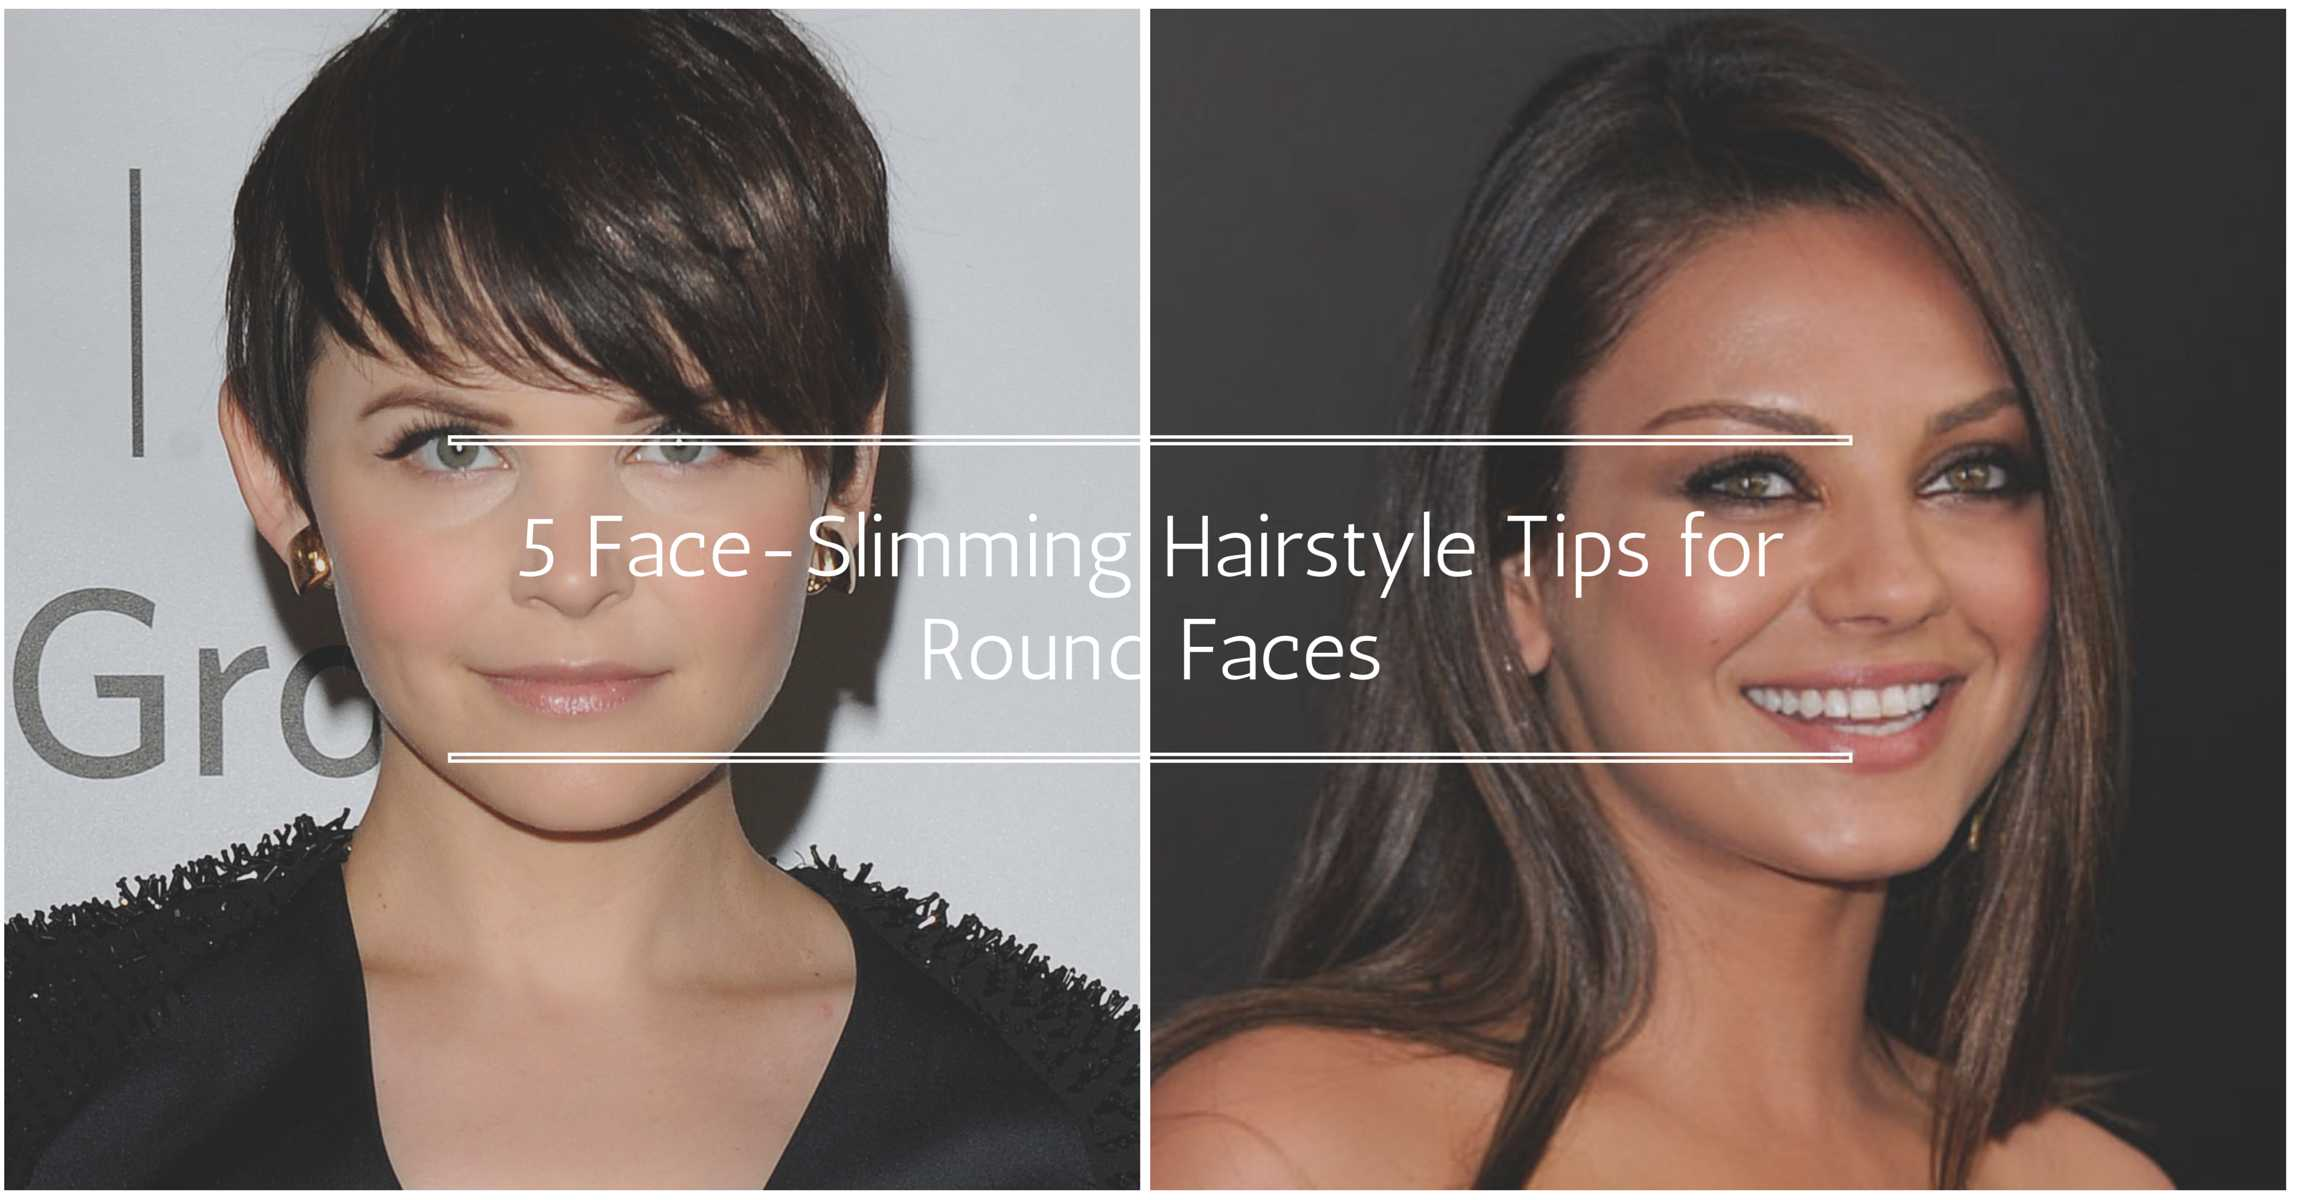 5 Life Saving Face Slimming Hairstyle Tips For Round Faces